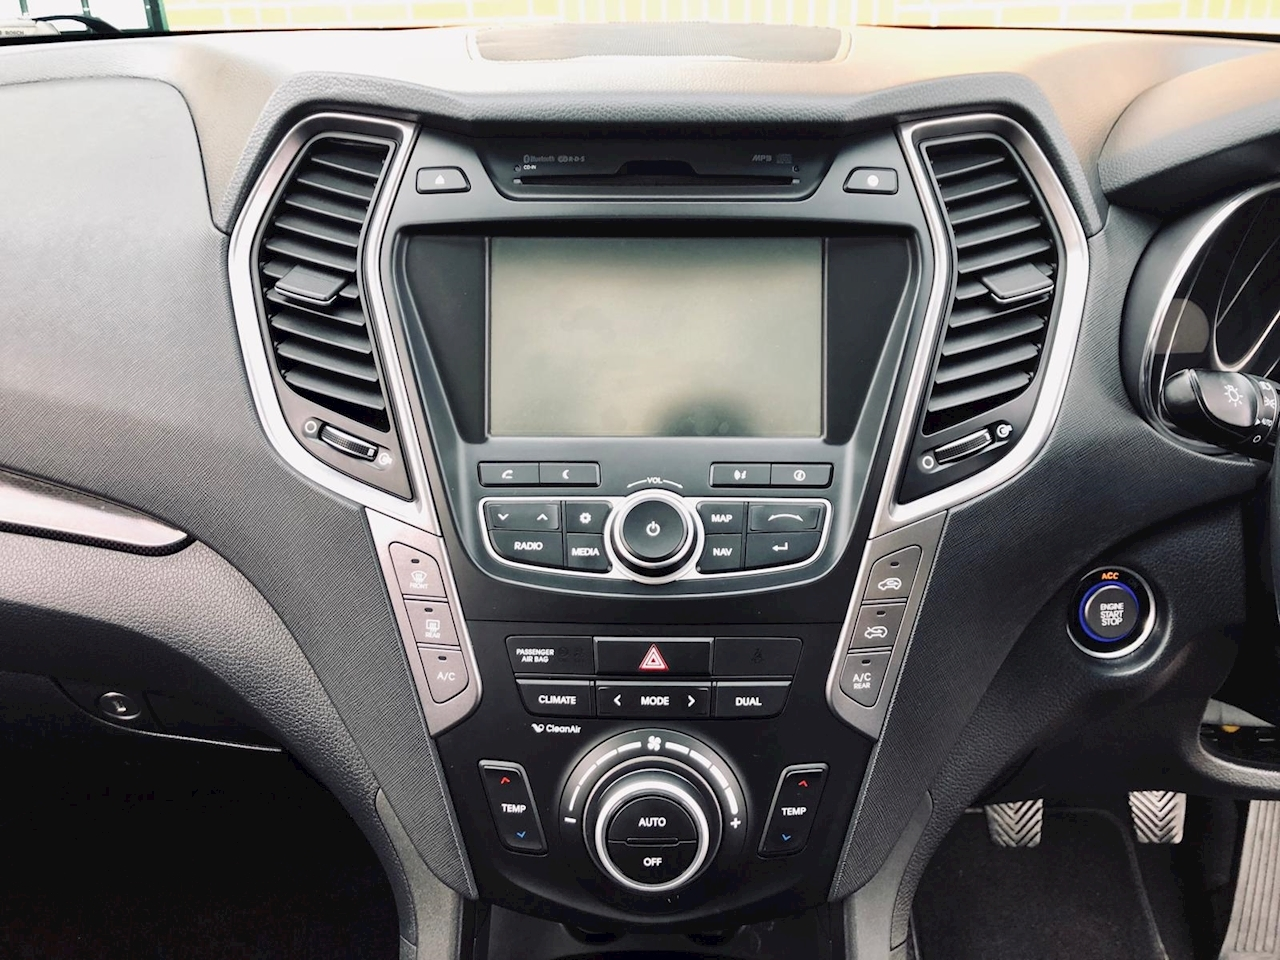 Used 2014 Hyundai Santa Fe Crdi Premium Se Estate 2 2 Manual